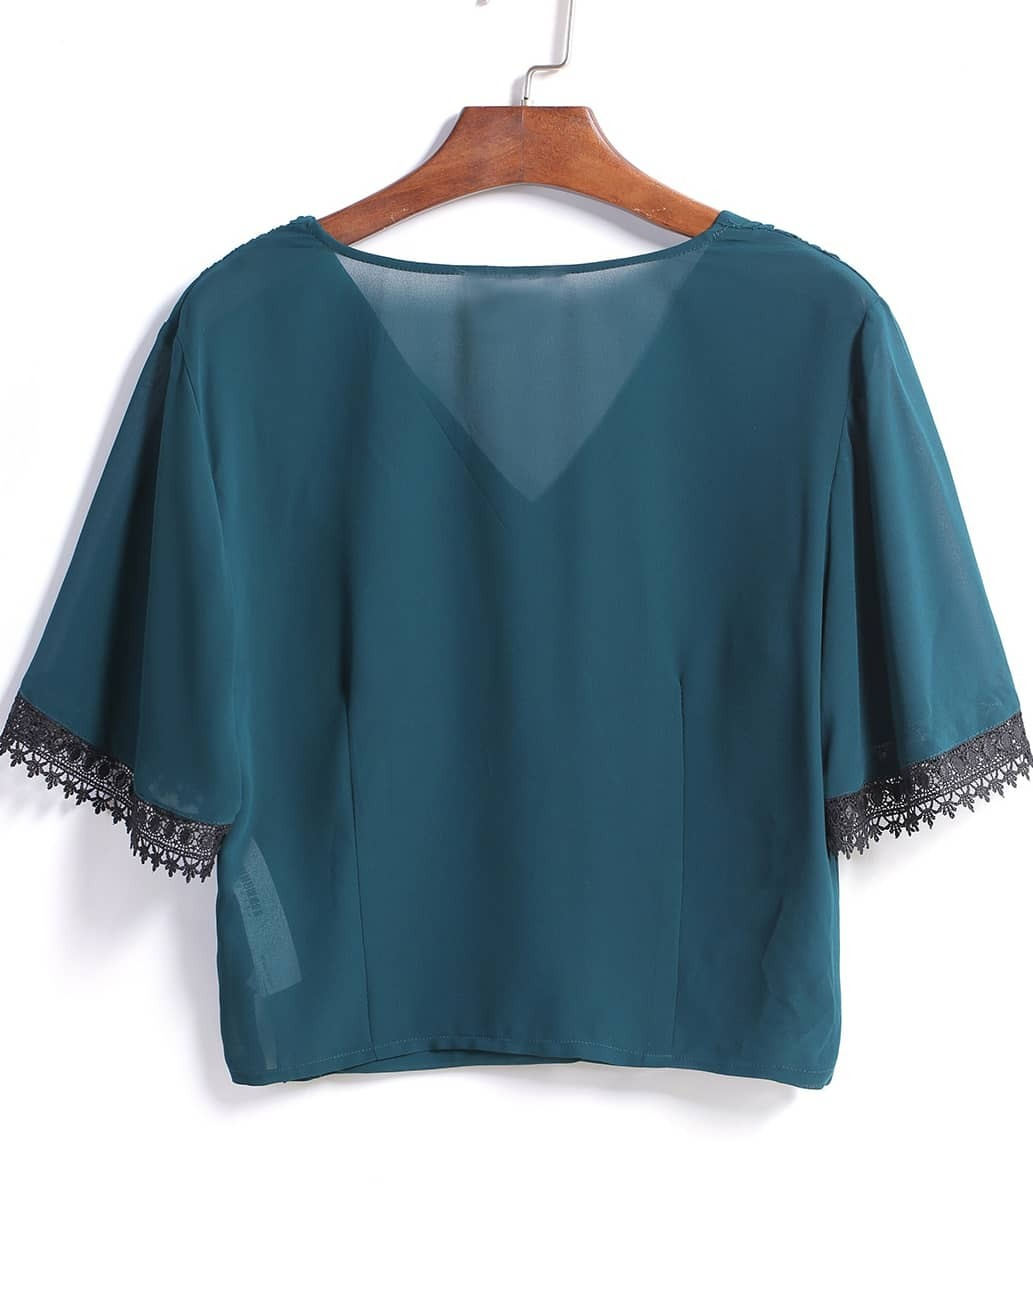 Green V Neck Lace Crop Blouse -SheIn(Sheinside)